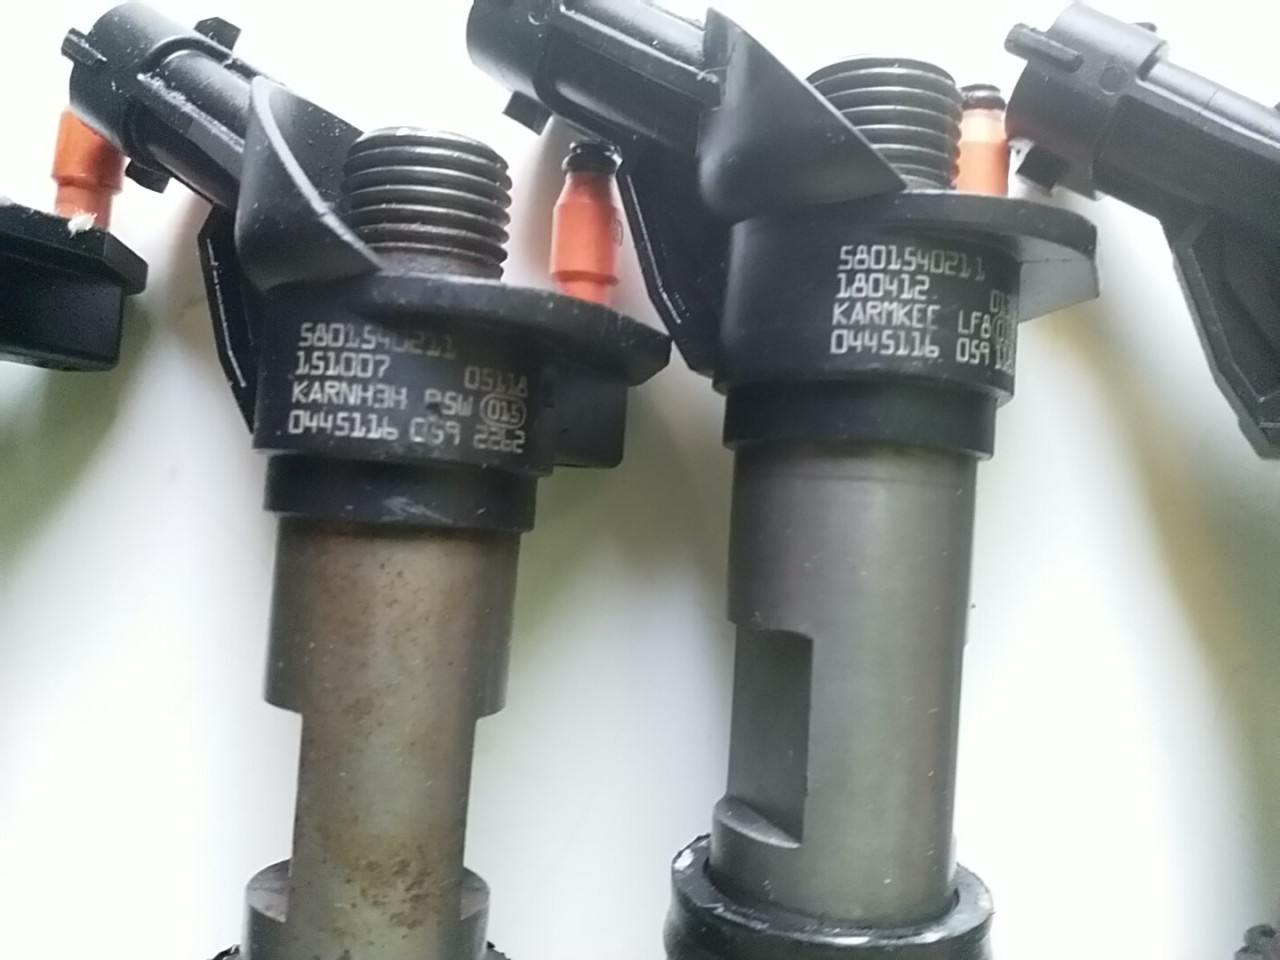 0445116059 Injector Citroen Jumper Peugeot Boxer 3.0 HDi Fiat Ducato Multijet 3.0 D Iveco Daily IV 3